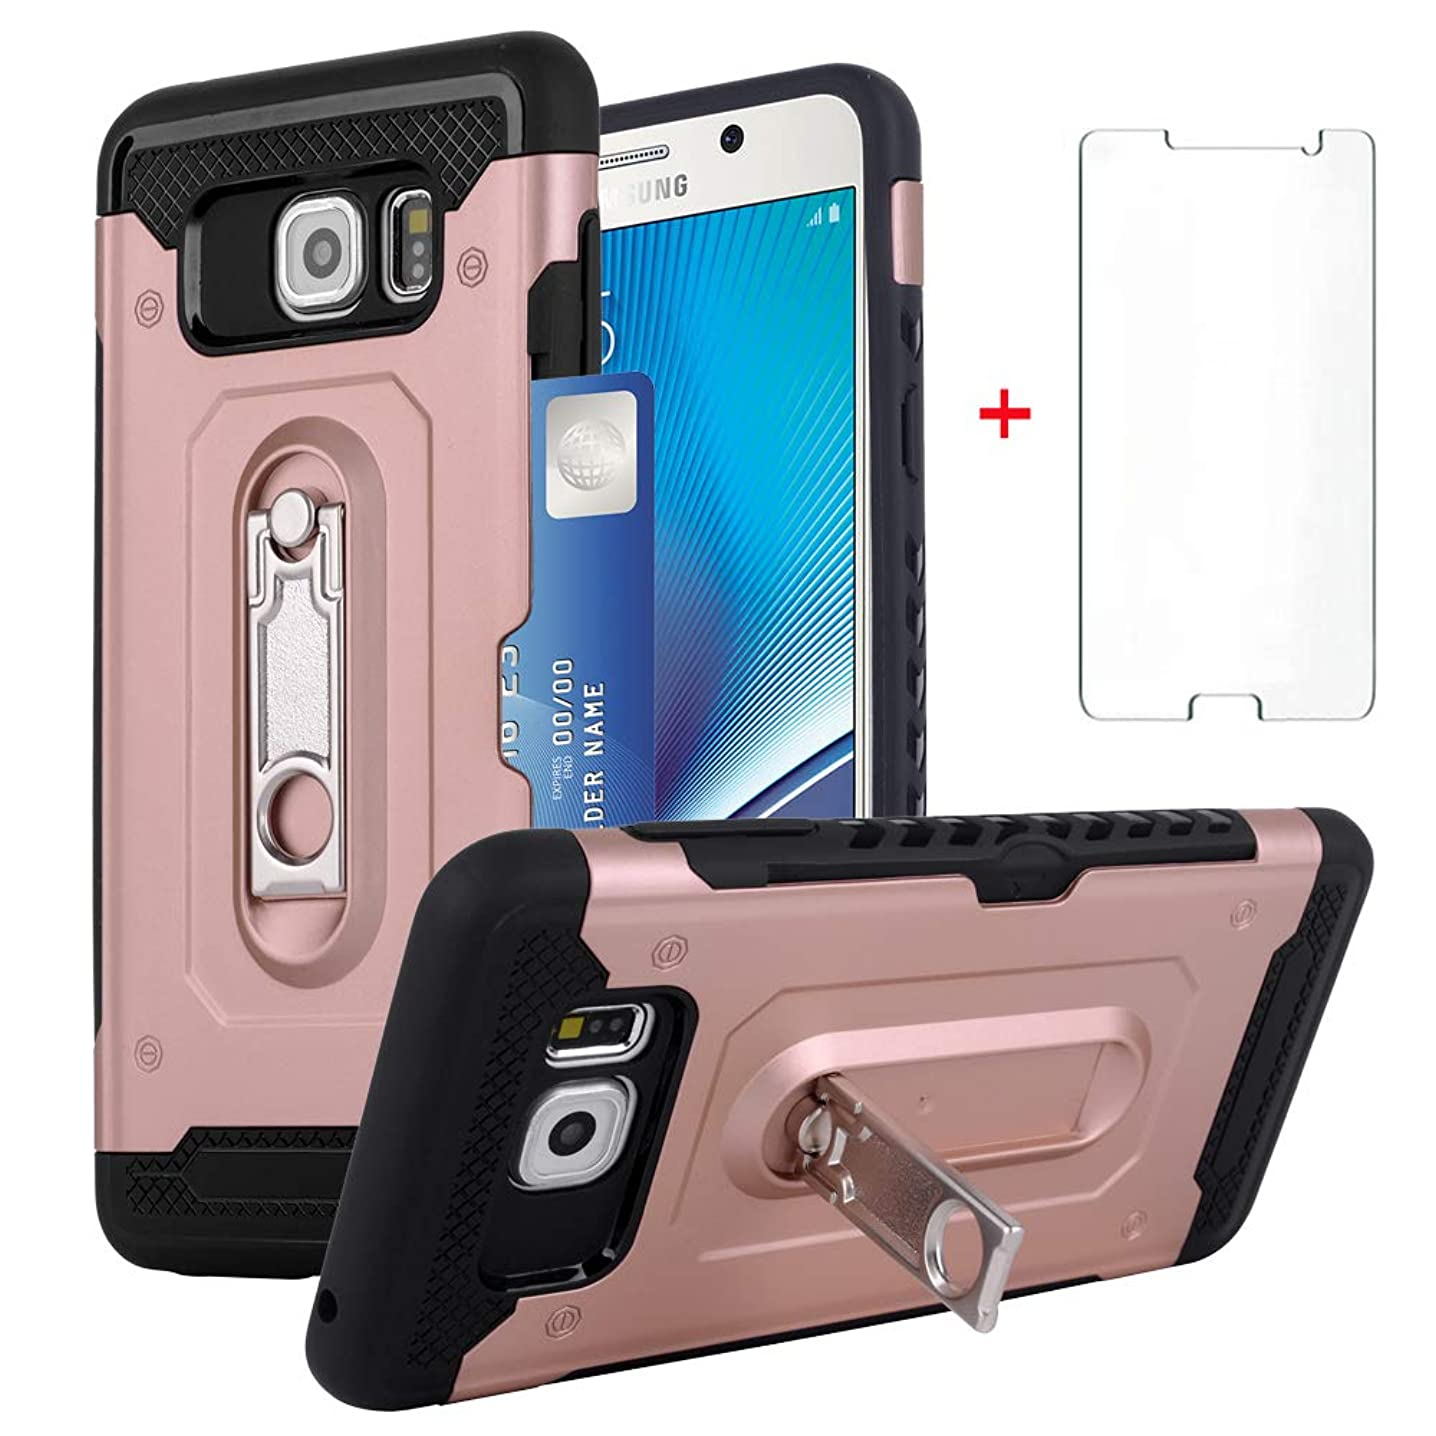 Samsung Galaxy Note 5 Wallet Phone Case Women Girls Slim Heavy Duty Silicone Protective Hard Cover with Tempered Glass Screen Protector Credit Card Holder Slot Stand Kickstand for Note5 Pink Rose Gold